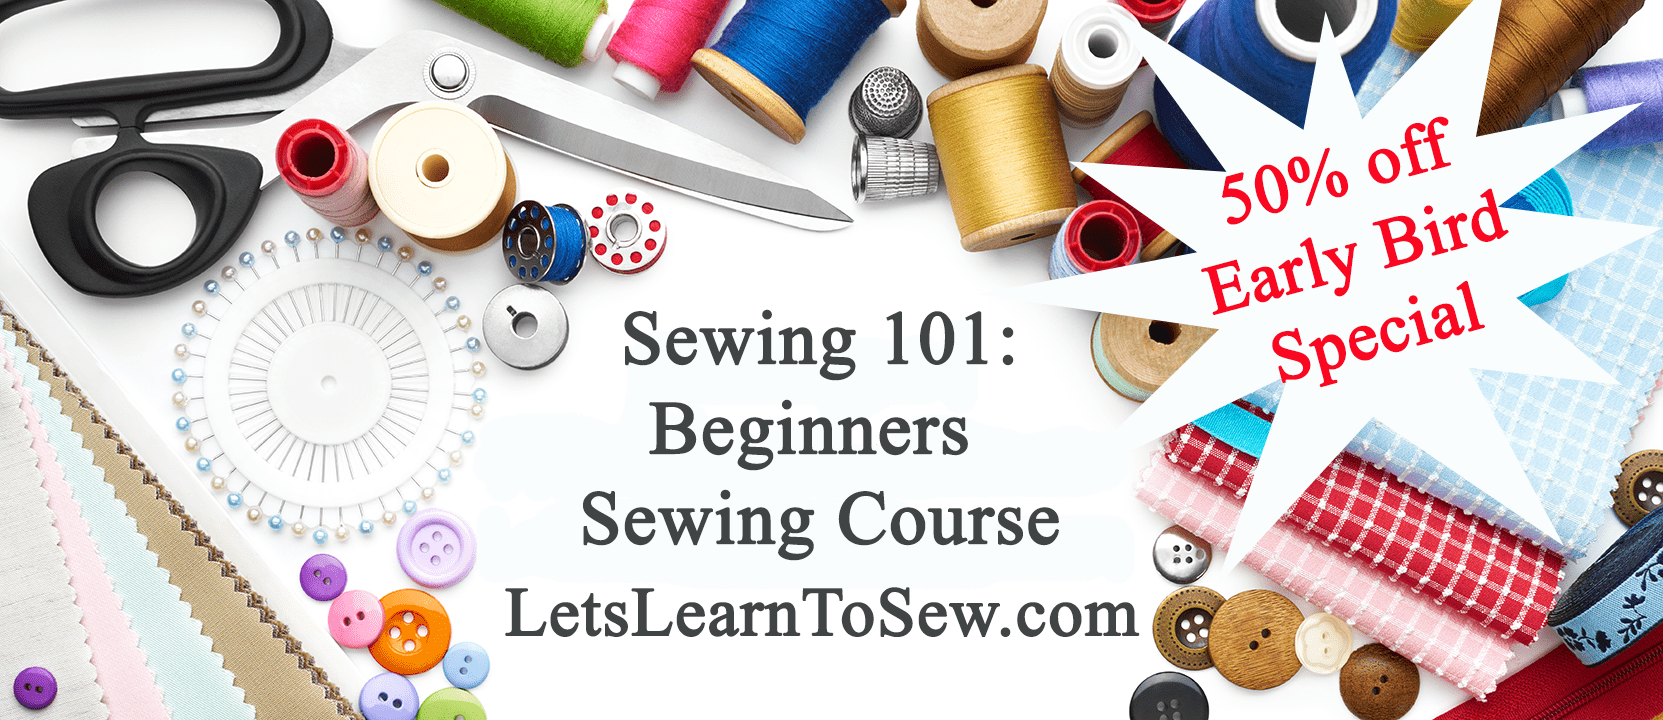 Learn to sew with our sewing 101 course.